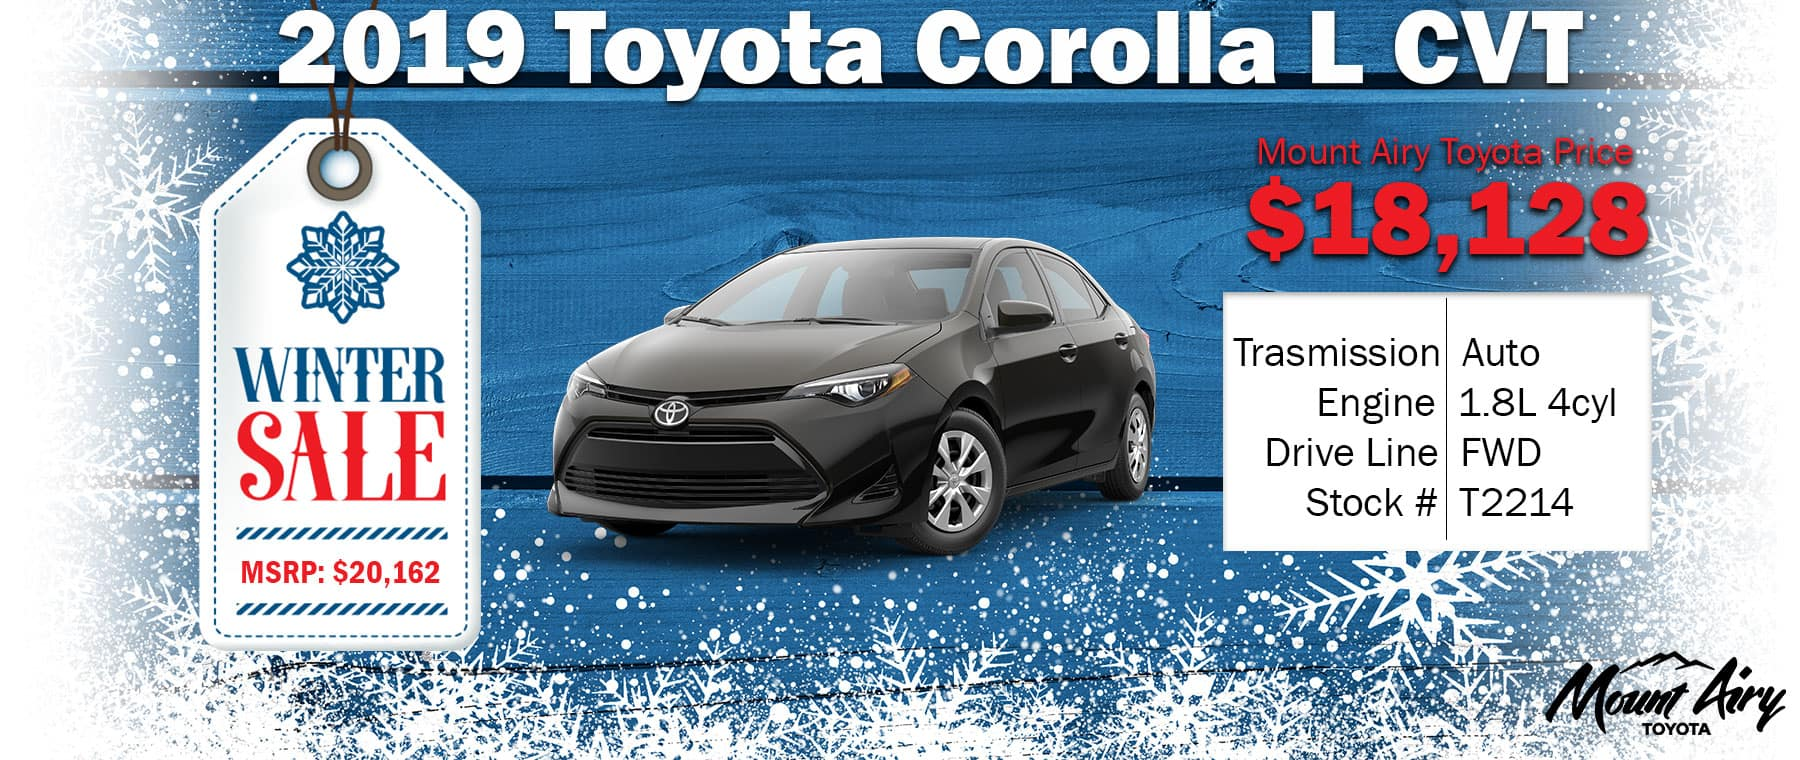 Best Toyota Corolla in Mount Airy